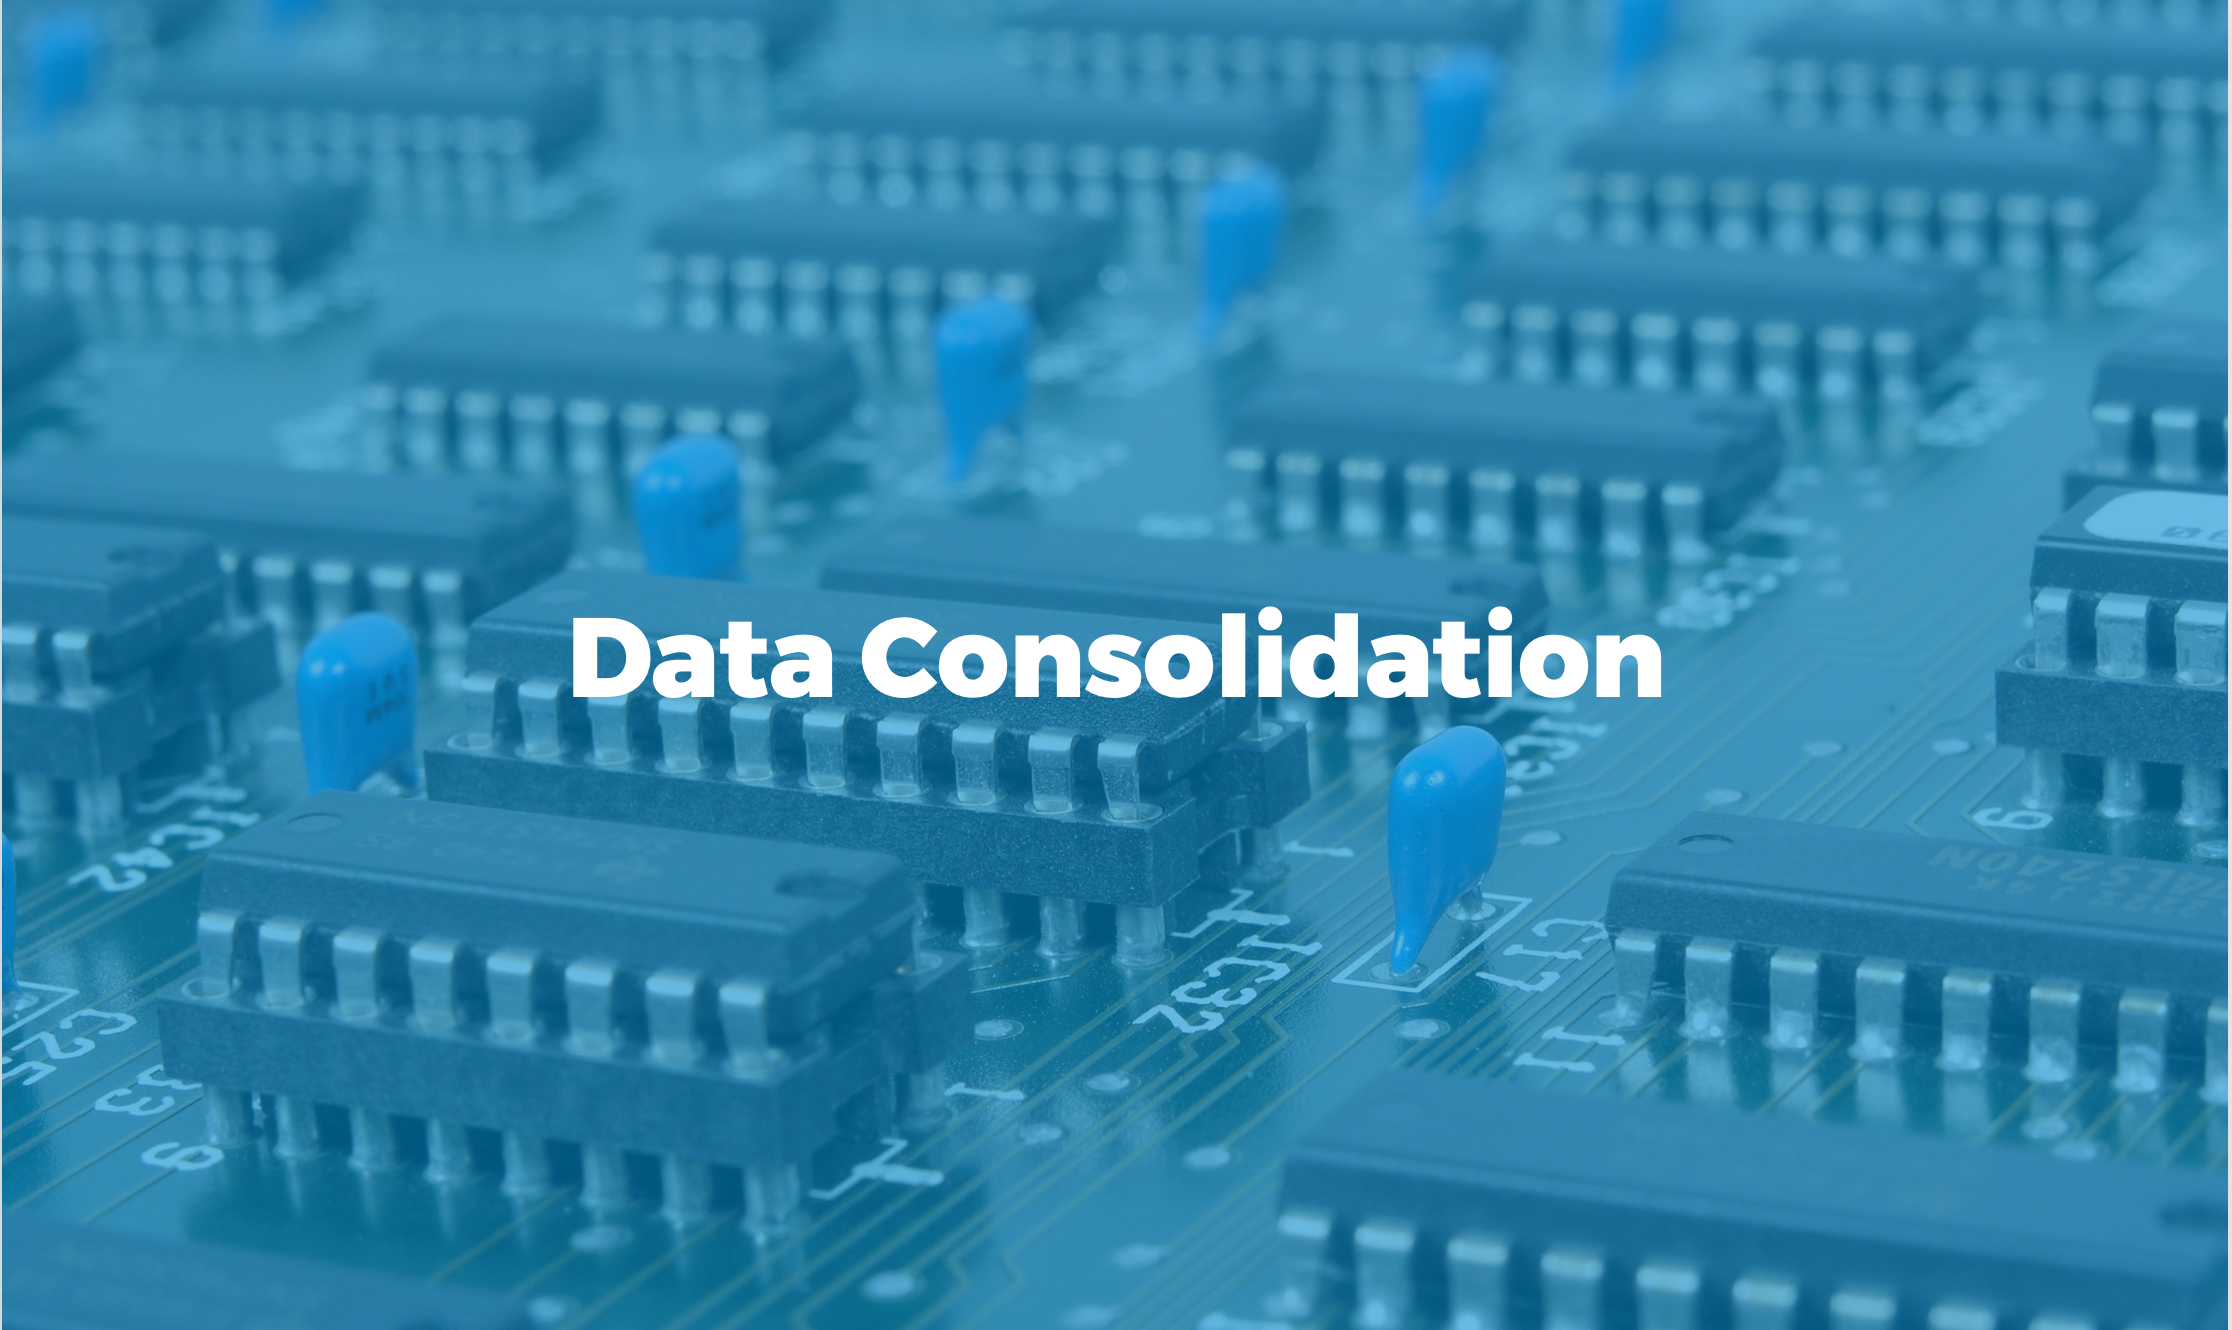 Bismart Data Consolidation